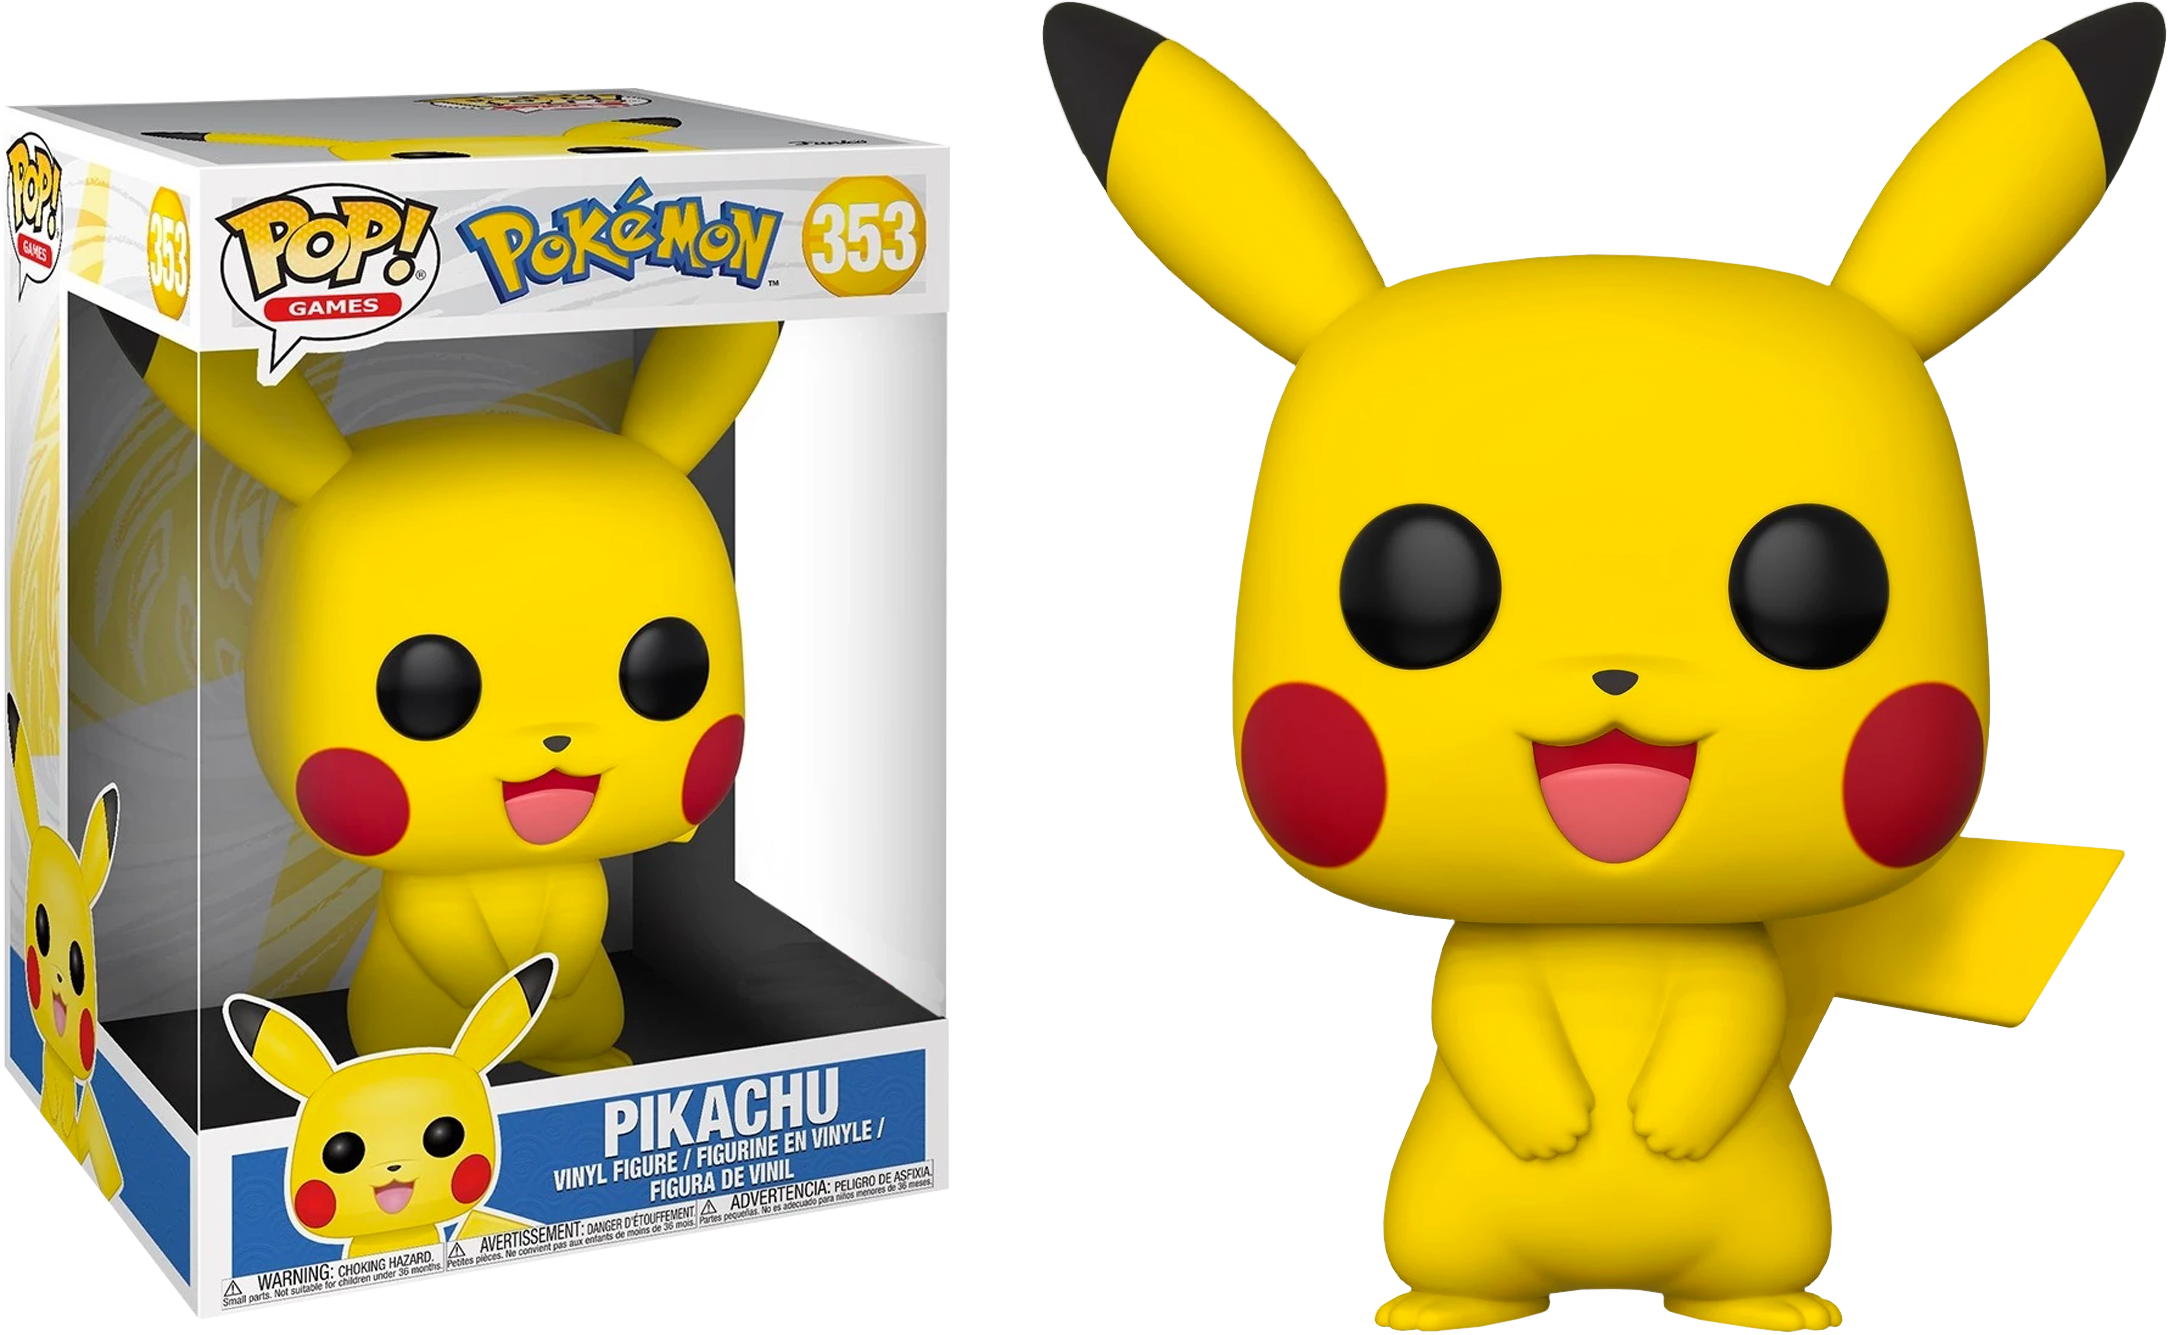 Funko Pop Games Pokemon Pikachu W Pop Protector 10 Inch 353 Vinyl Figures Pokemon Pikachu